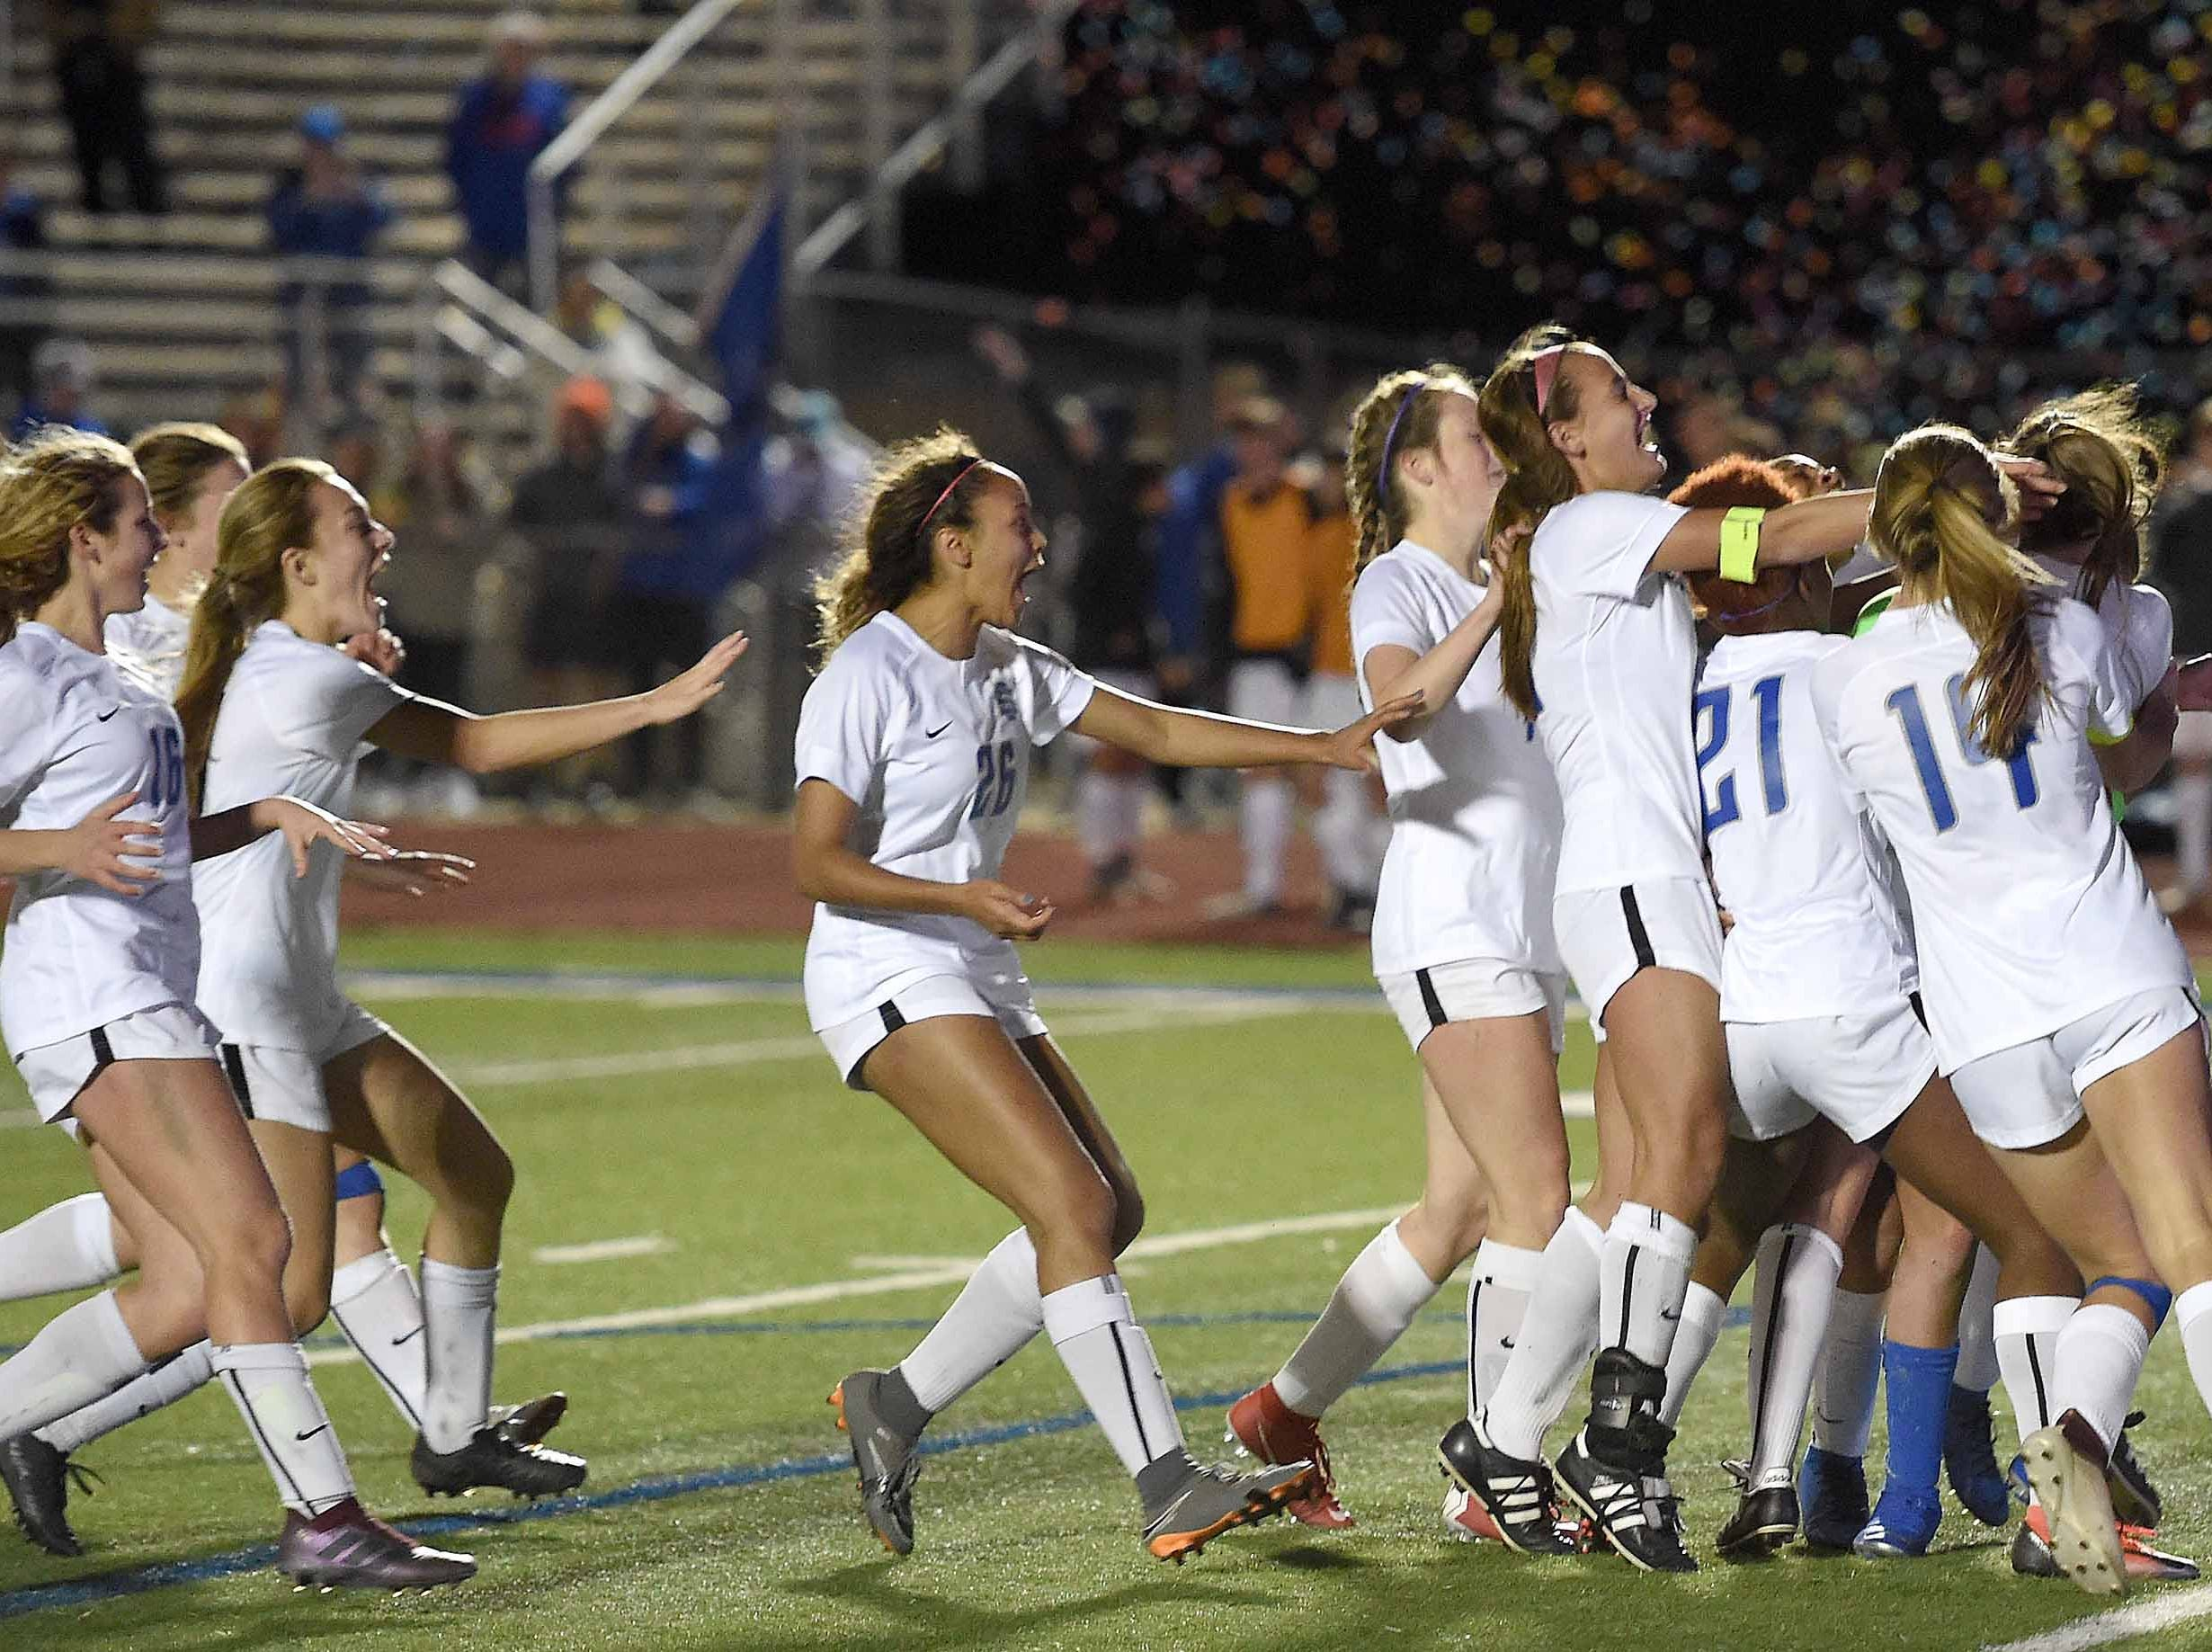 The Ocean Springs Lady Greyhounds run to Jackie Dilorenzo, who made the winning penalty kick, and goalkeeper A'leigh Coleman after beating Madison Central 1-0 on penalty kicks after overtime periods in the Class 6A championship in the MHSAA BlueCross Blue Shield of Mississippi Soccer Classic on Saturday, February 9, 2019, at Ridgeland High School in Ridgeland, Miss.